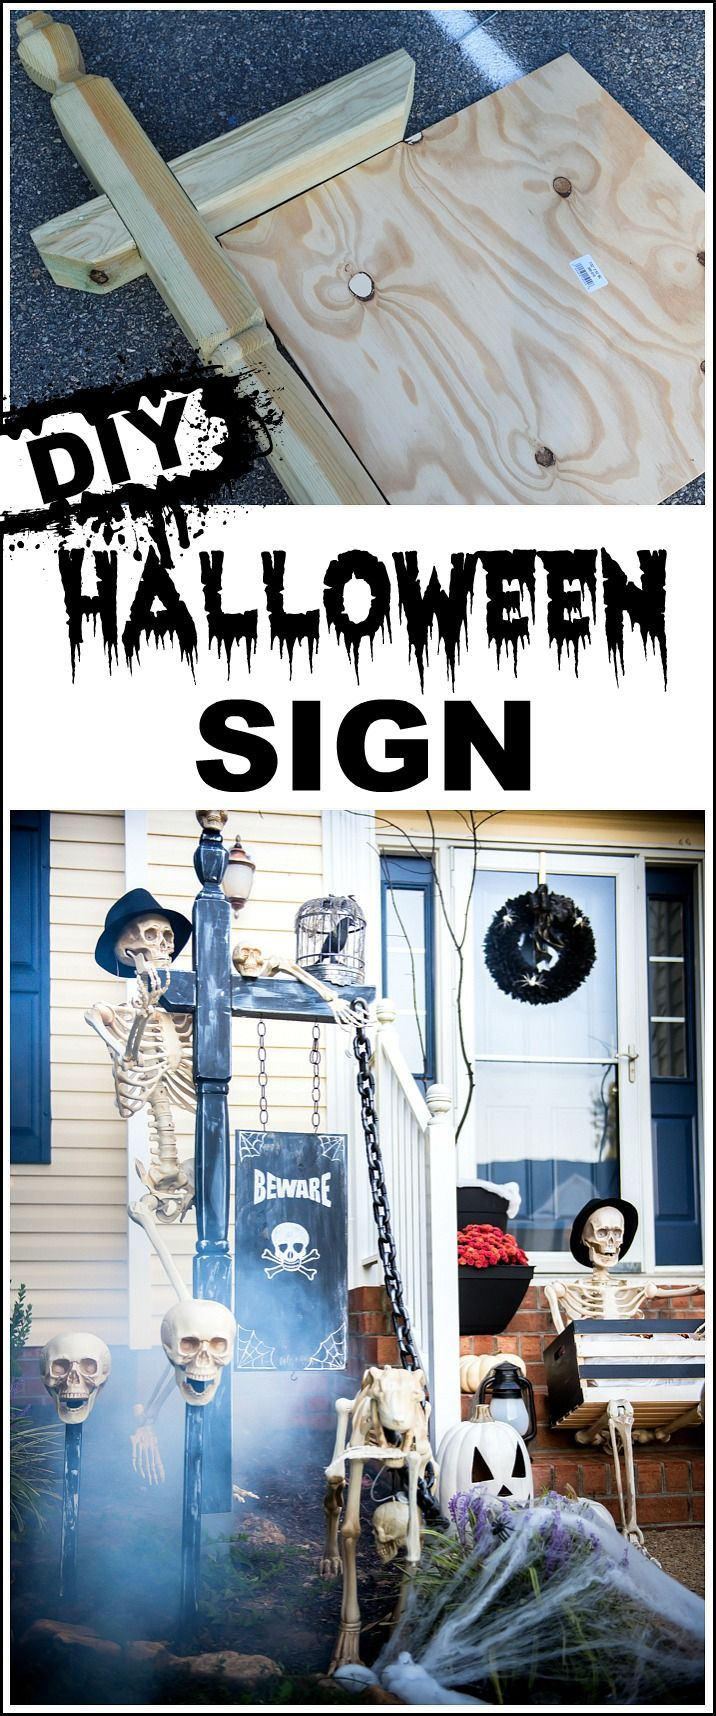 Best DIY Home Decor Ideas Images On Pinterest DIY Home - A basic guide to vinyl signs removal optionshow to use vinyl off to remove sign and vehicle graphicssteps